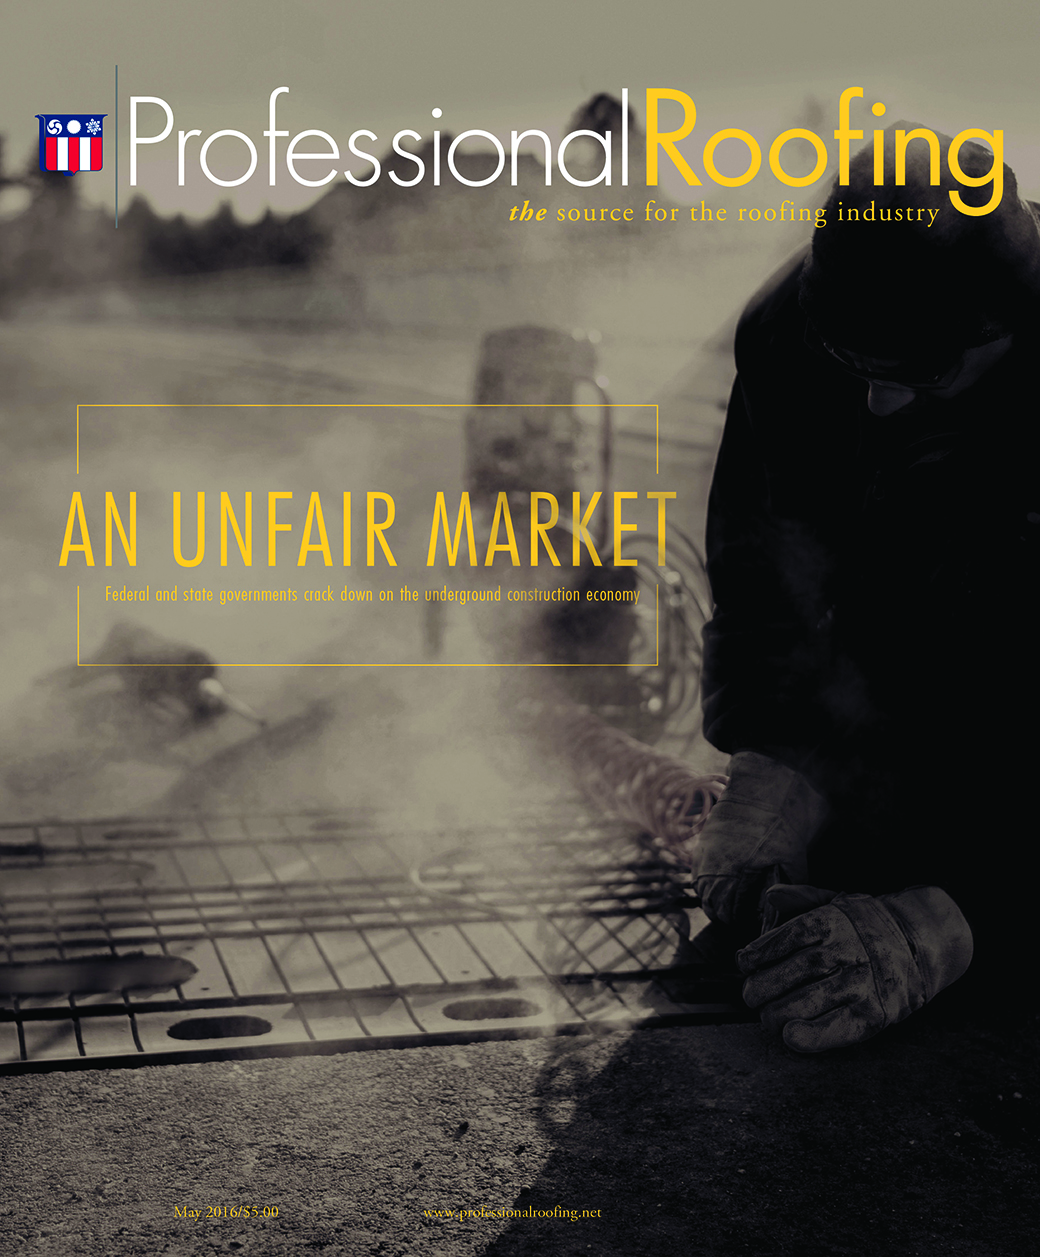 Professional Roofing Magazine 5/1/2016